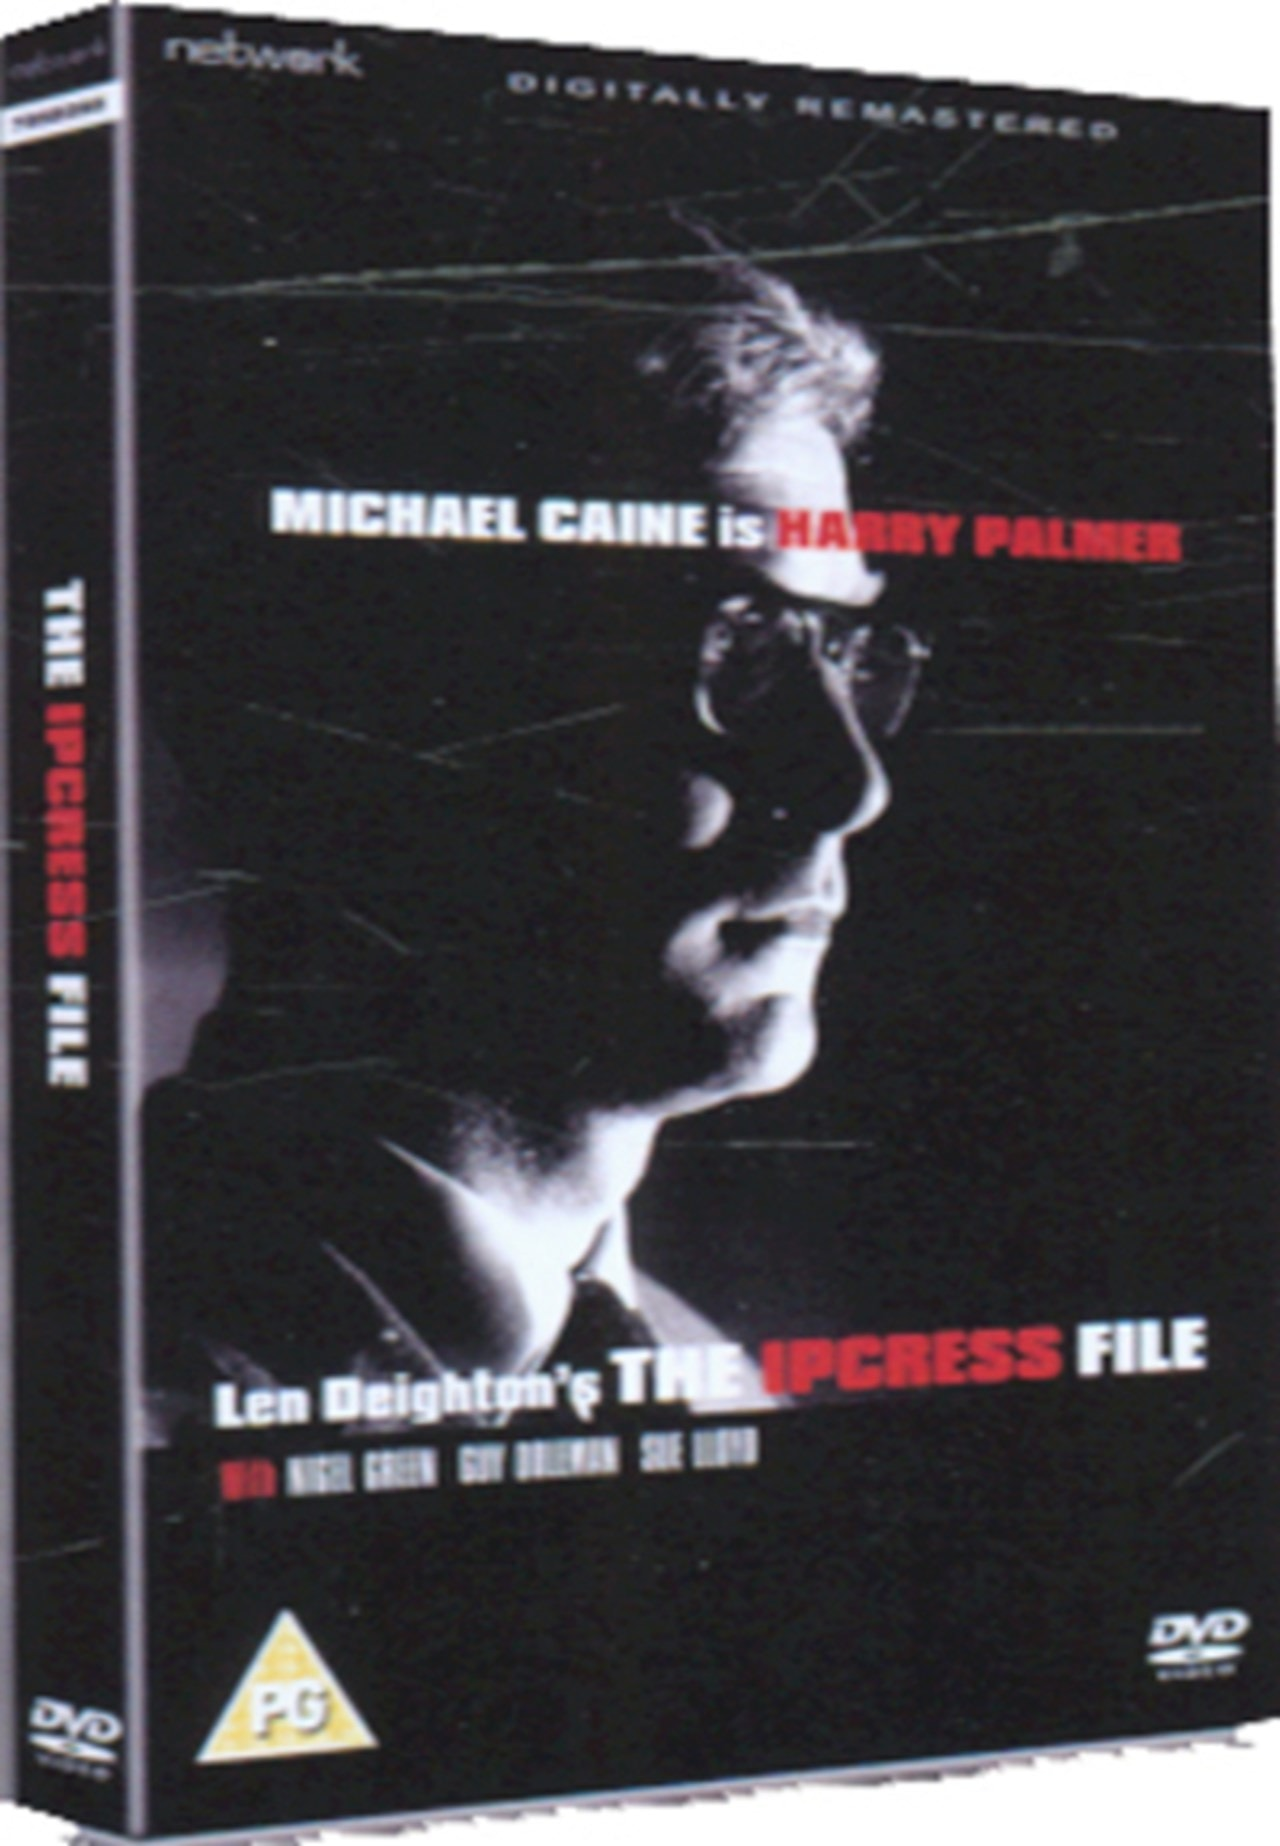 The Ipcress File - 1